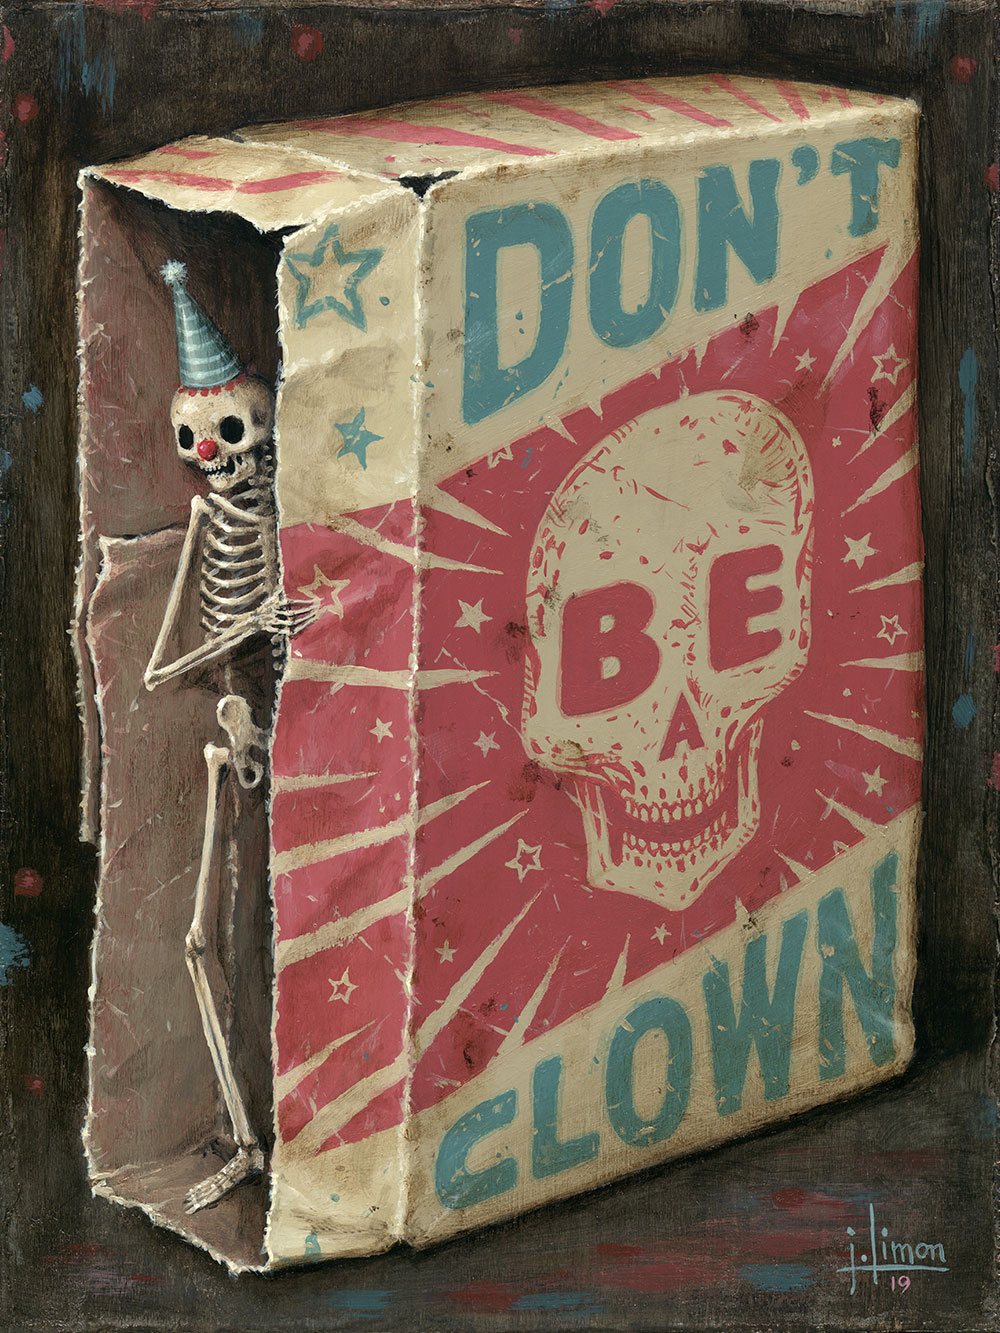 Don't Be A Clown